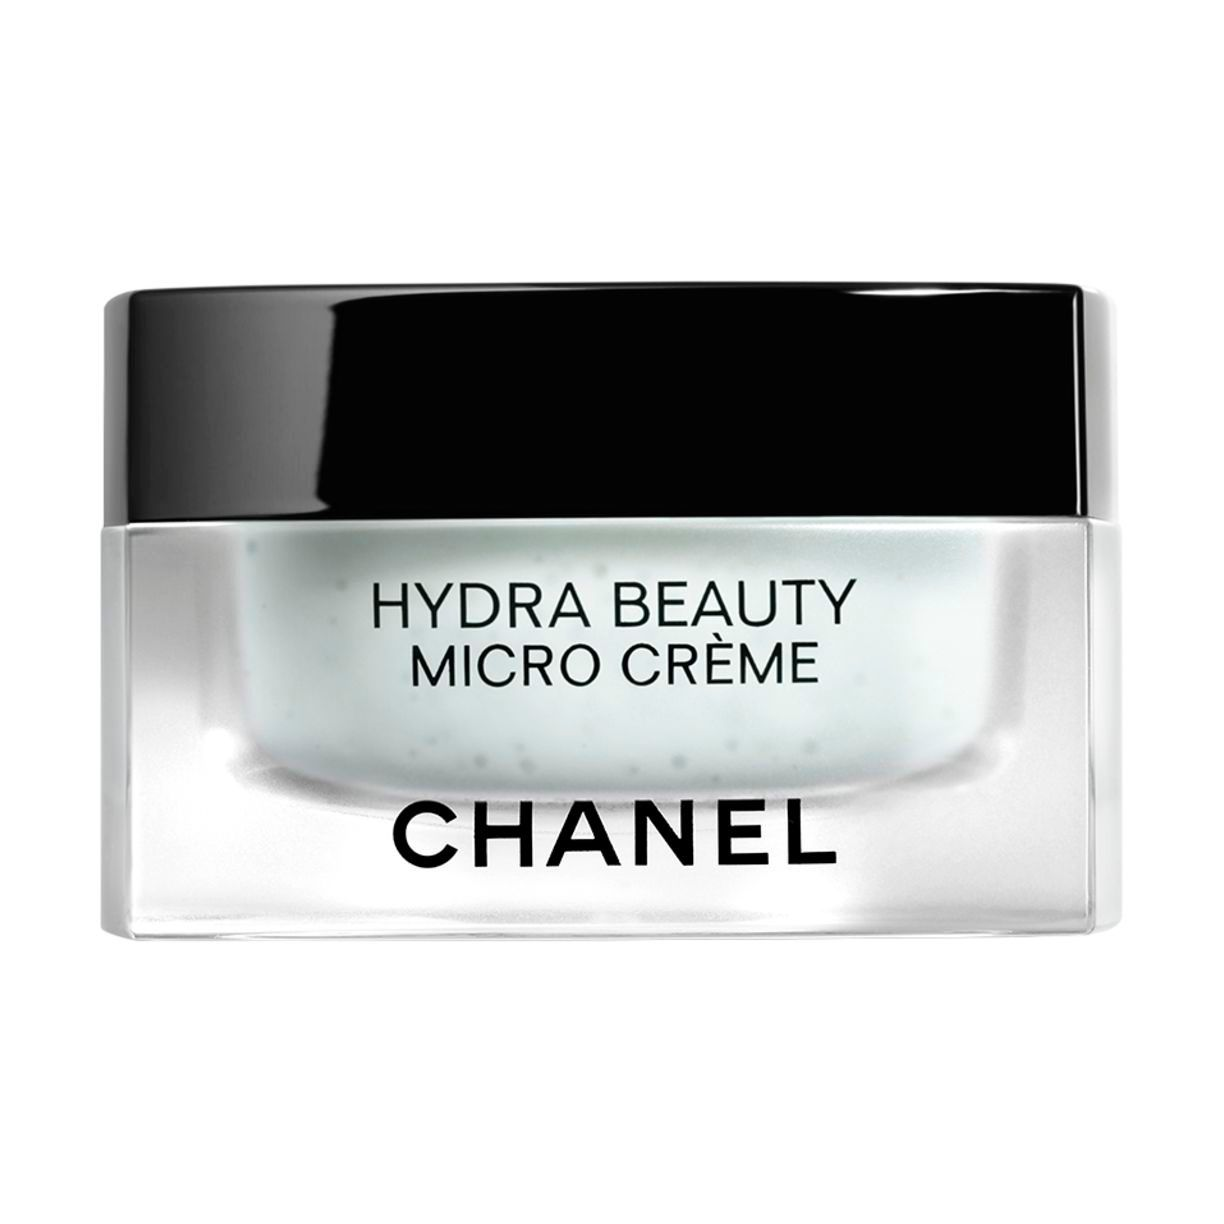 Hydra Beauty Micro Crème Fortifying Replenishing Hydration Jar 50g Chanel Beauty Hydra Beauty